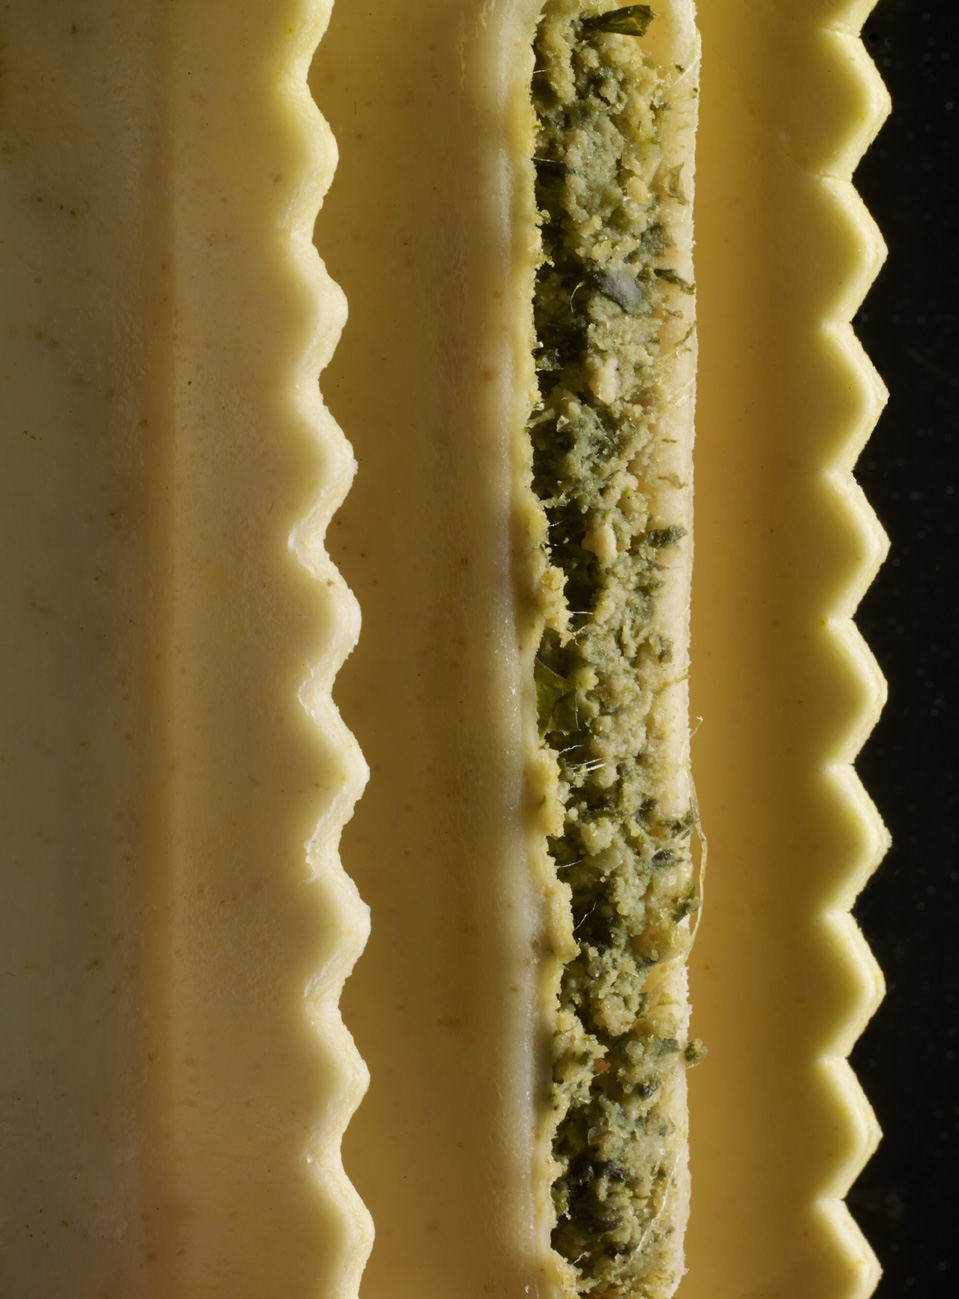 Spinach and ricotta filled pasta